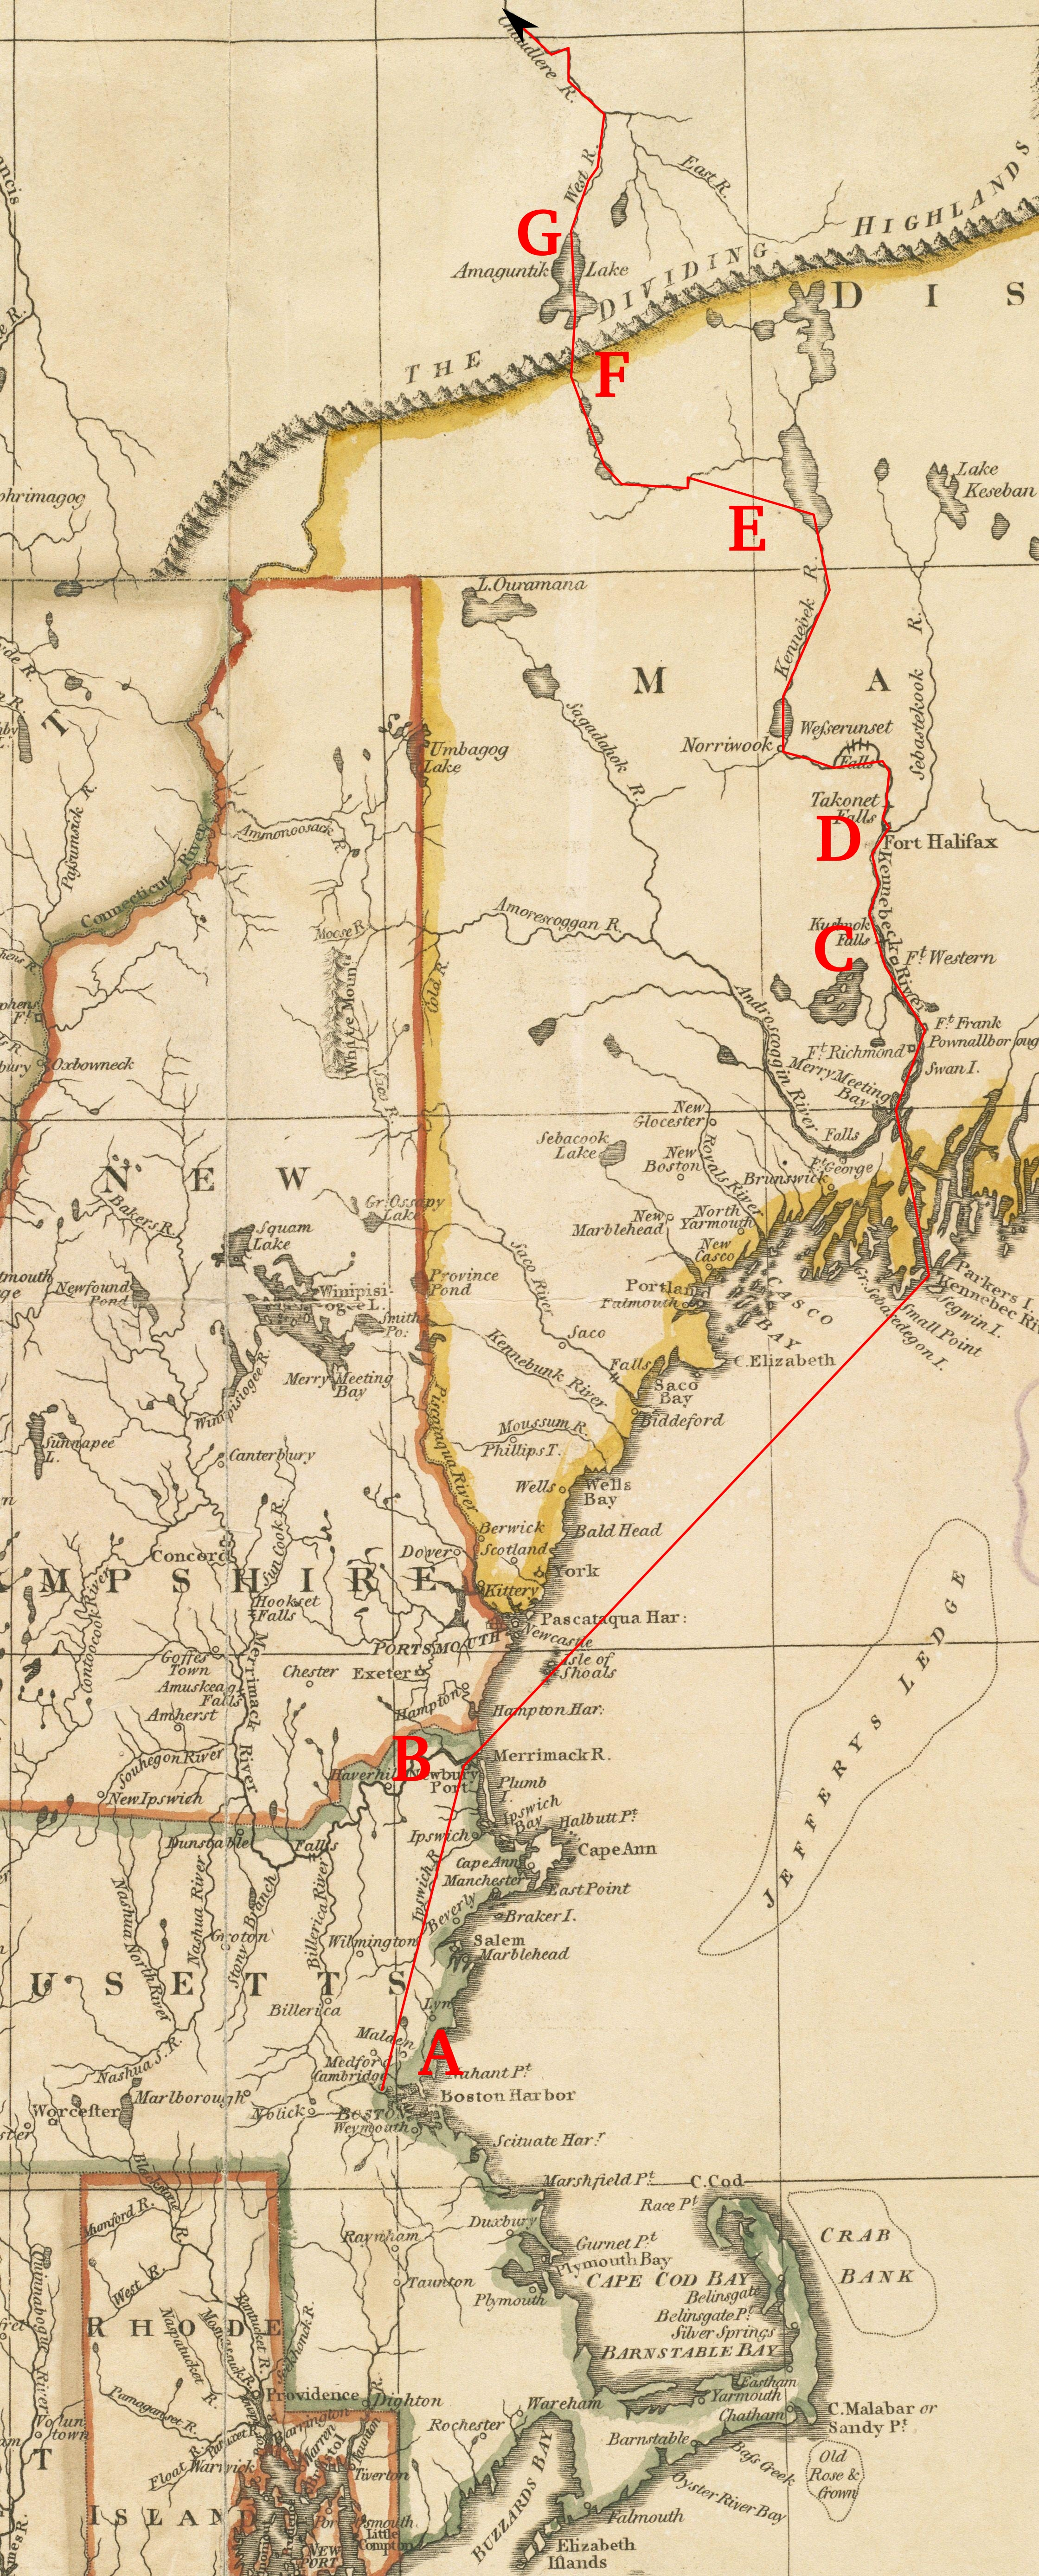 Route of Arnold's expedition